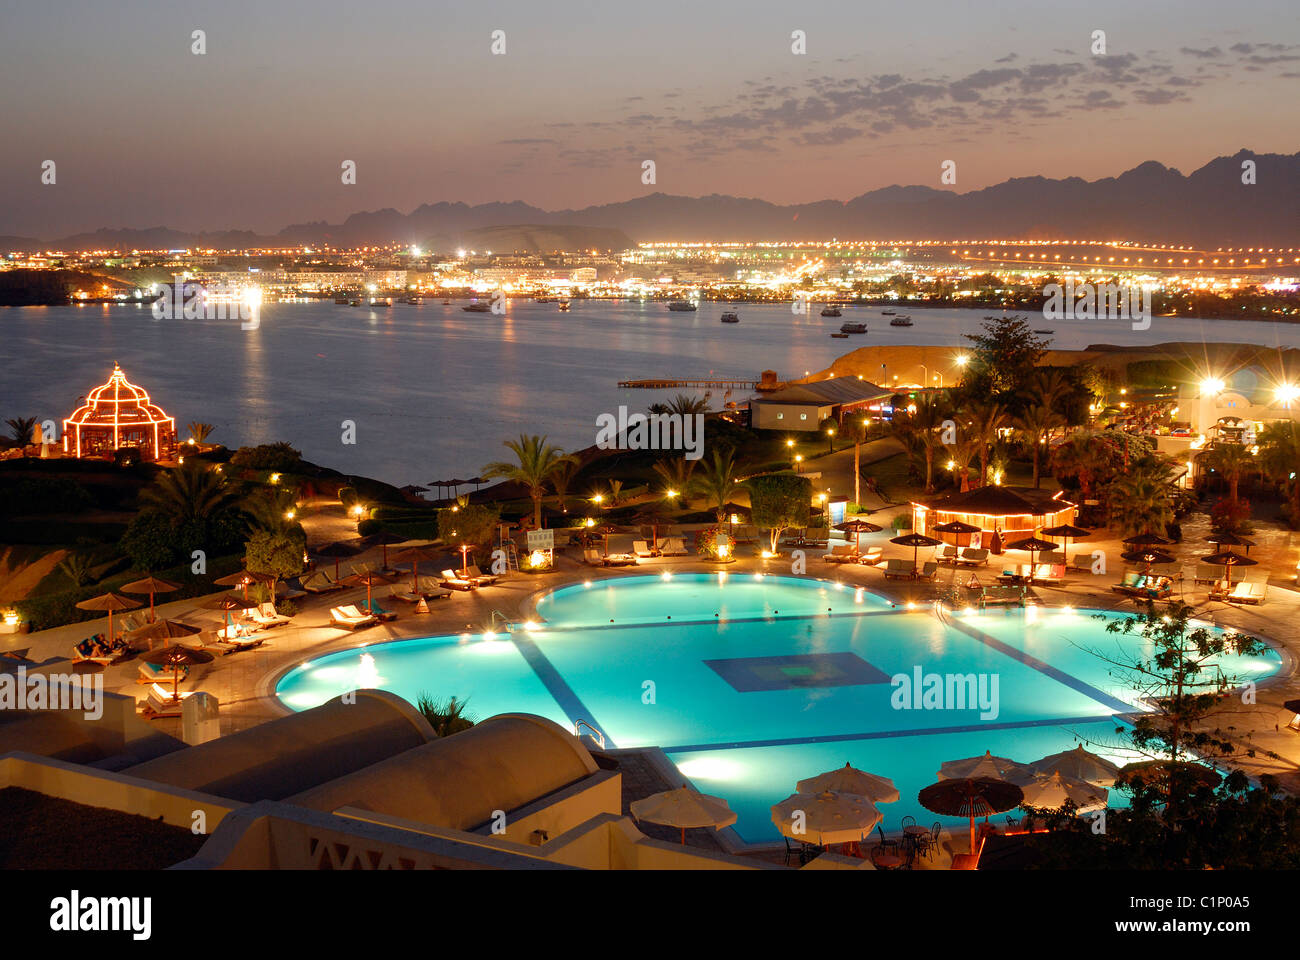 Naama bay in sharm el sheikh